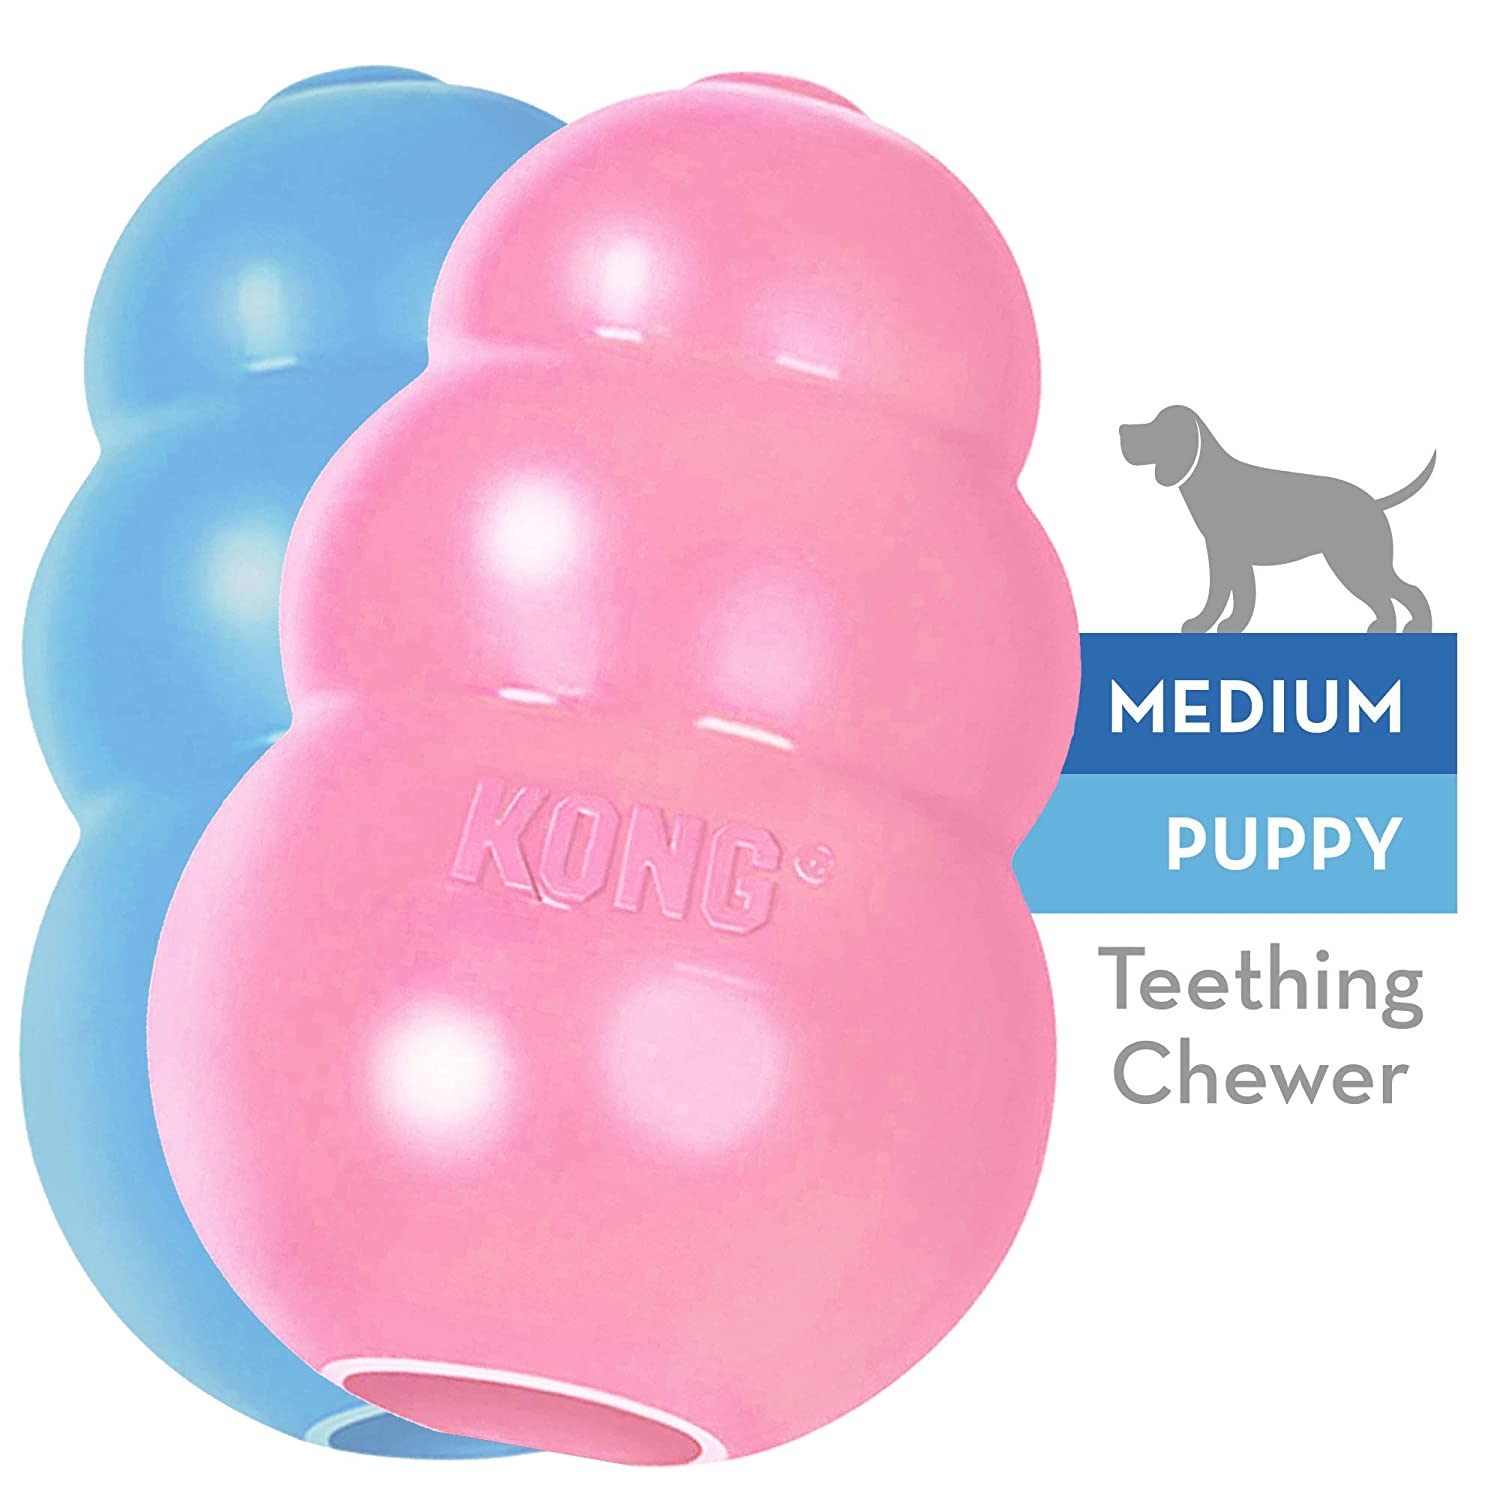 B0002AR182 KONG - Puppy Toy - Natural Teething Rubber - Fun to Chew, Chase and Fetch (Includes One Toy, Color May Vary) 71Pmwn70HXL